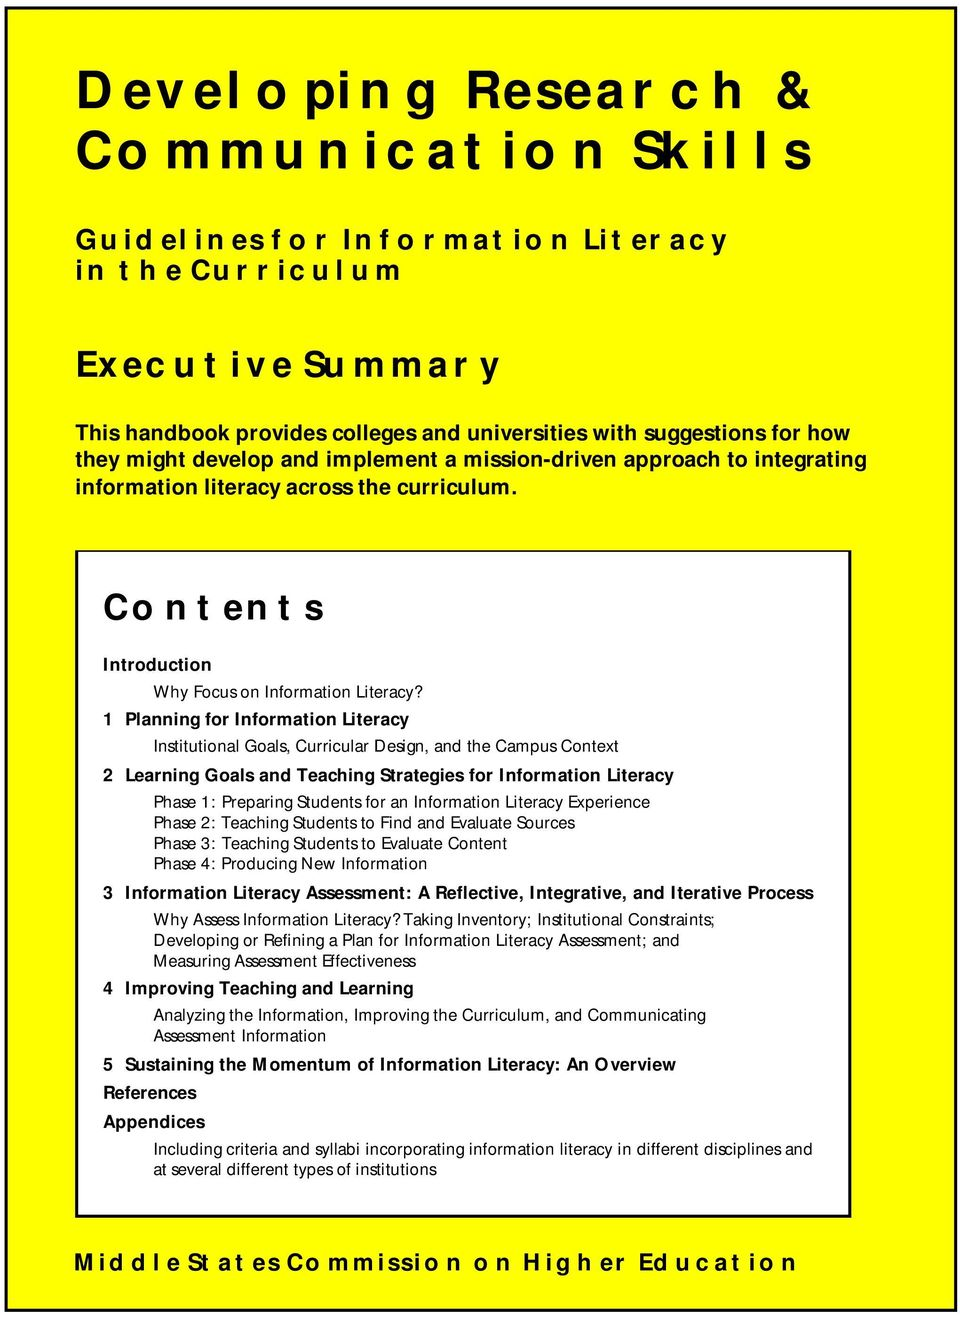 1 Planning for Information Literacy Institutional Goals, Curricular Design, and the Campus Context 2 Learning Goals and Teaching Strategies for Information Literacy Phase 1: Preparing Students for an